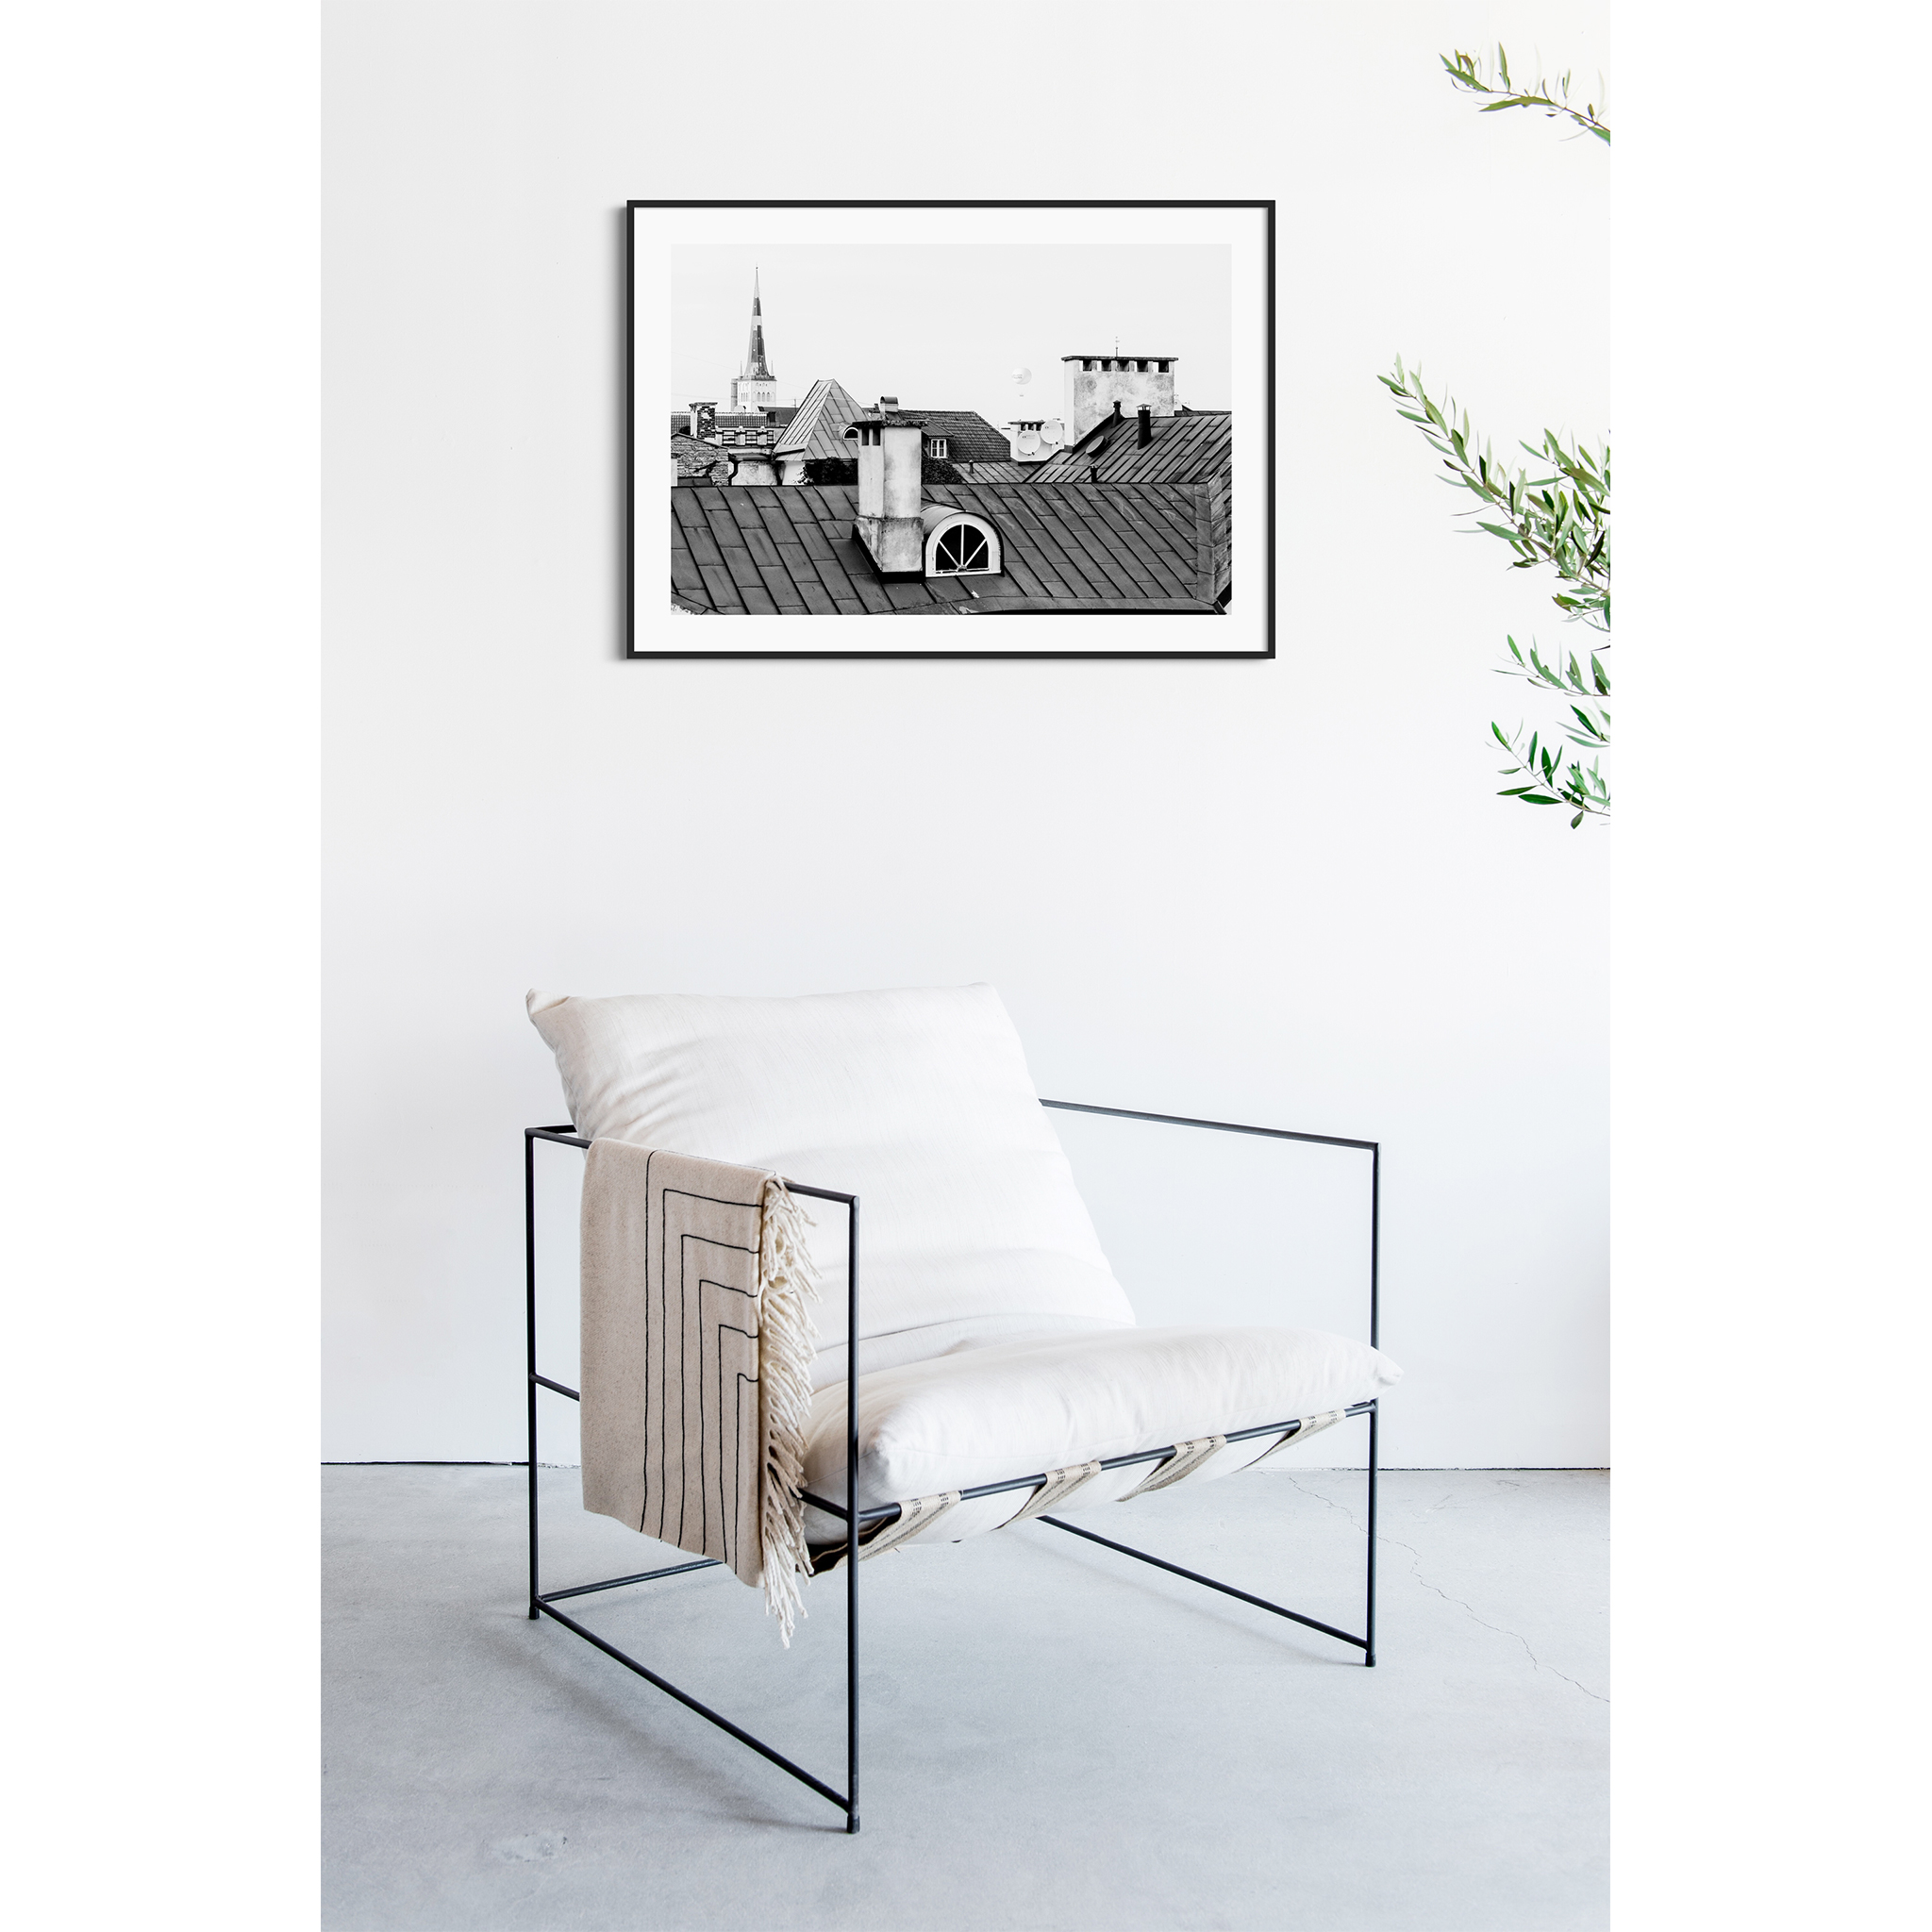 Tallinn Roofs - black and white photography print in the black frame on the wall over the chair